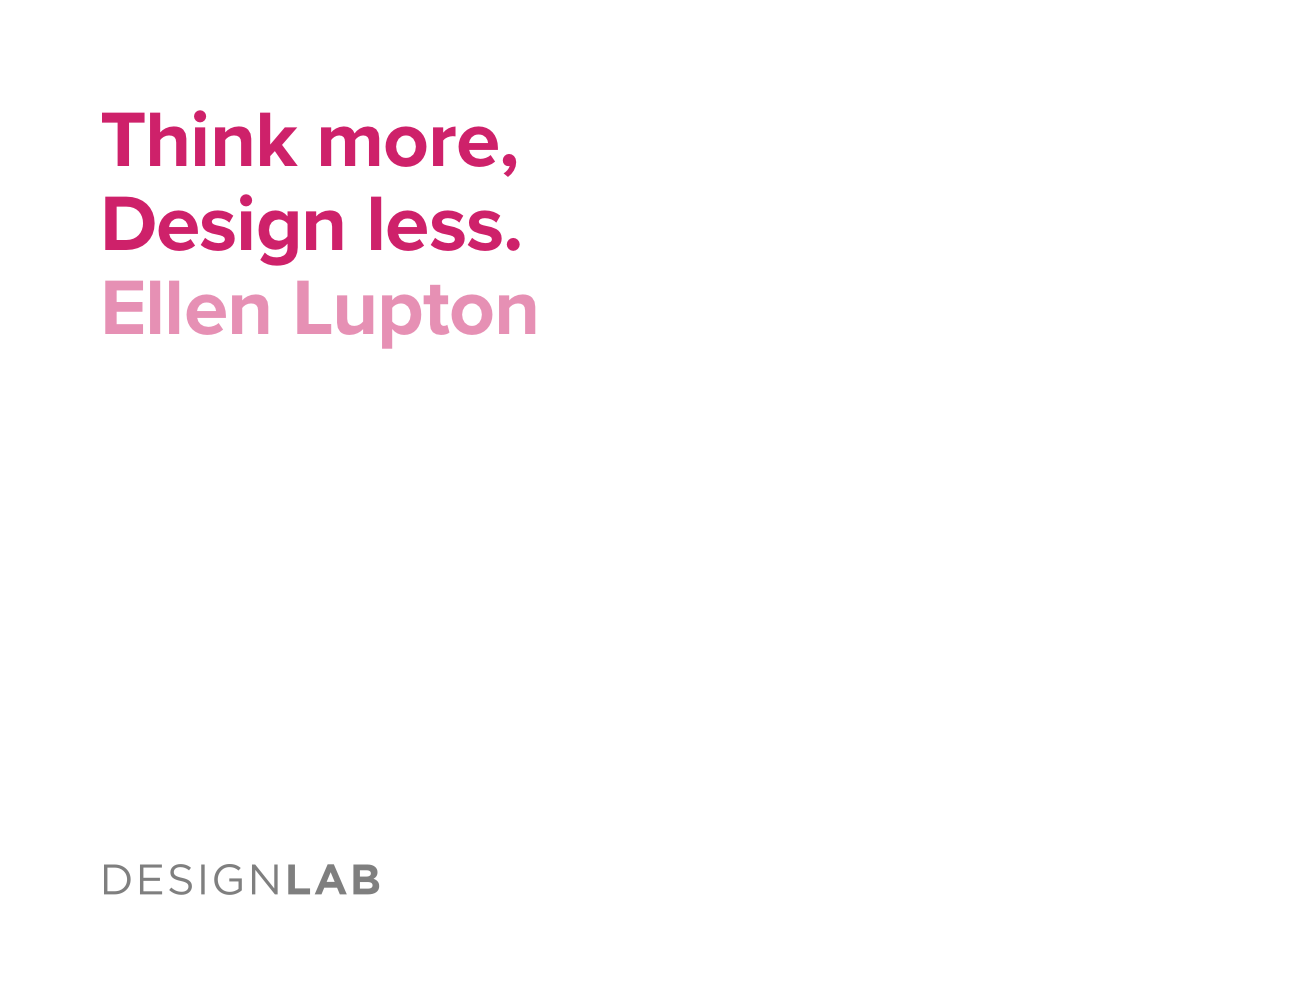 Think more, design less. Ellen Lupton